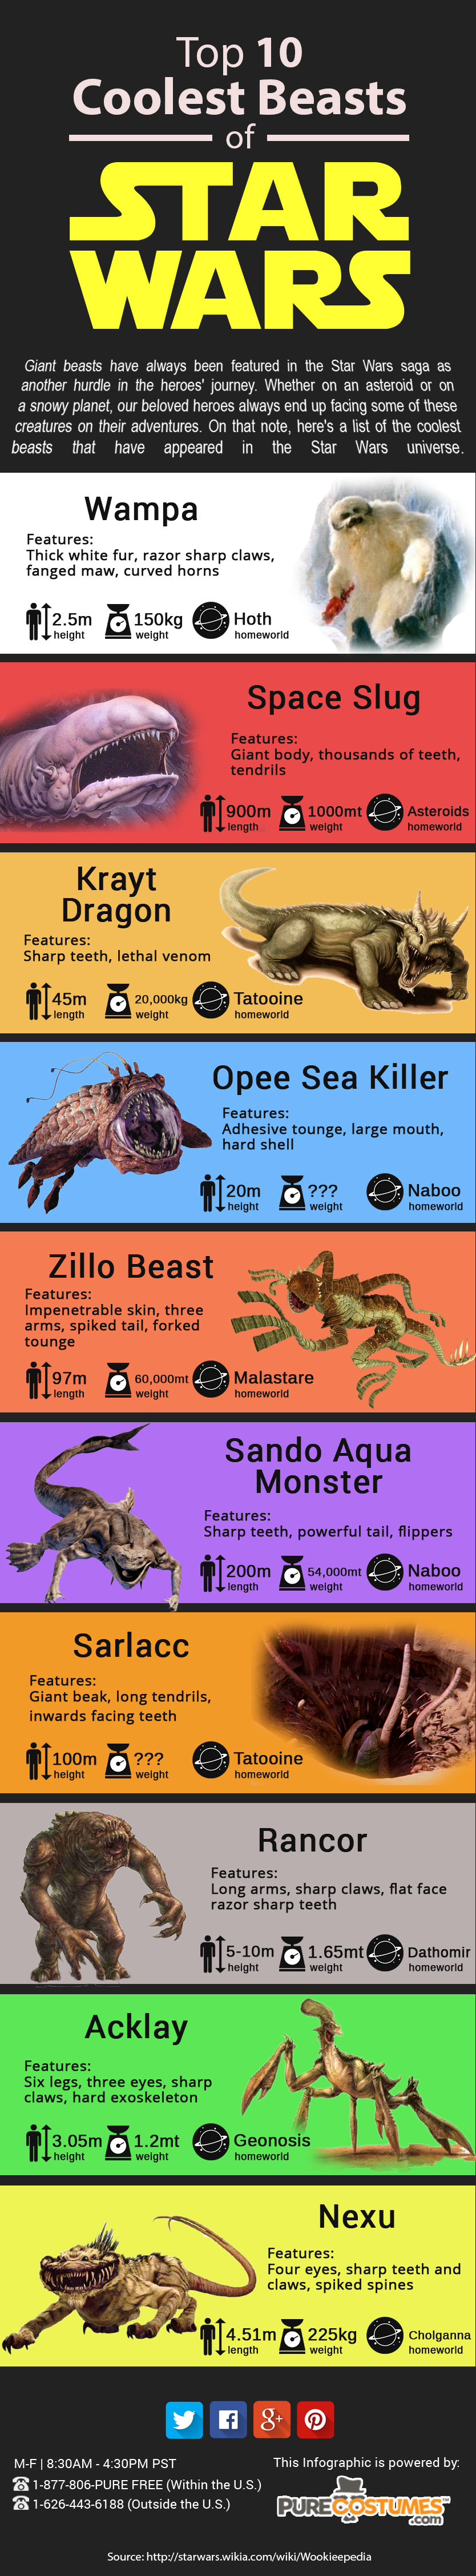 top-10-coolest-beasts-from-the-star-wars-universe-infographic.jpeg